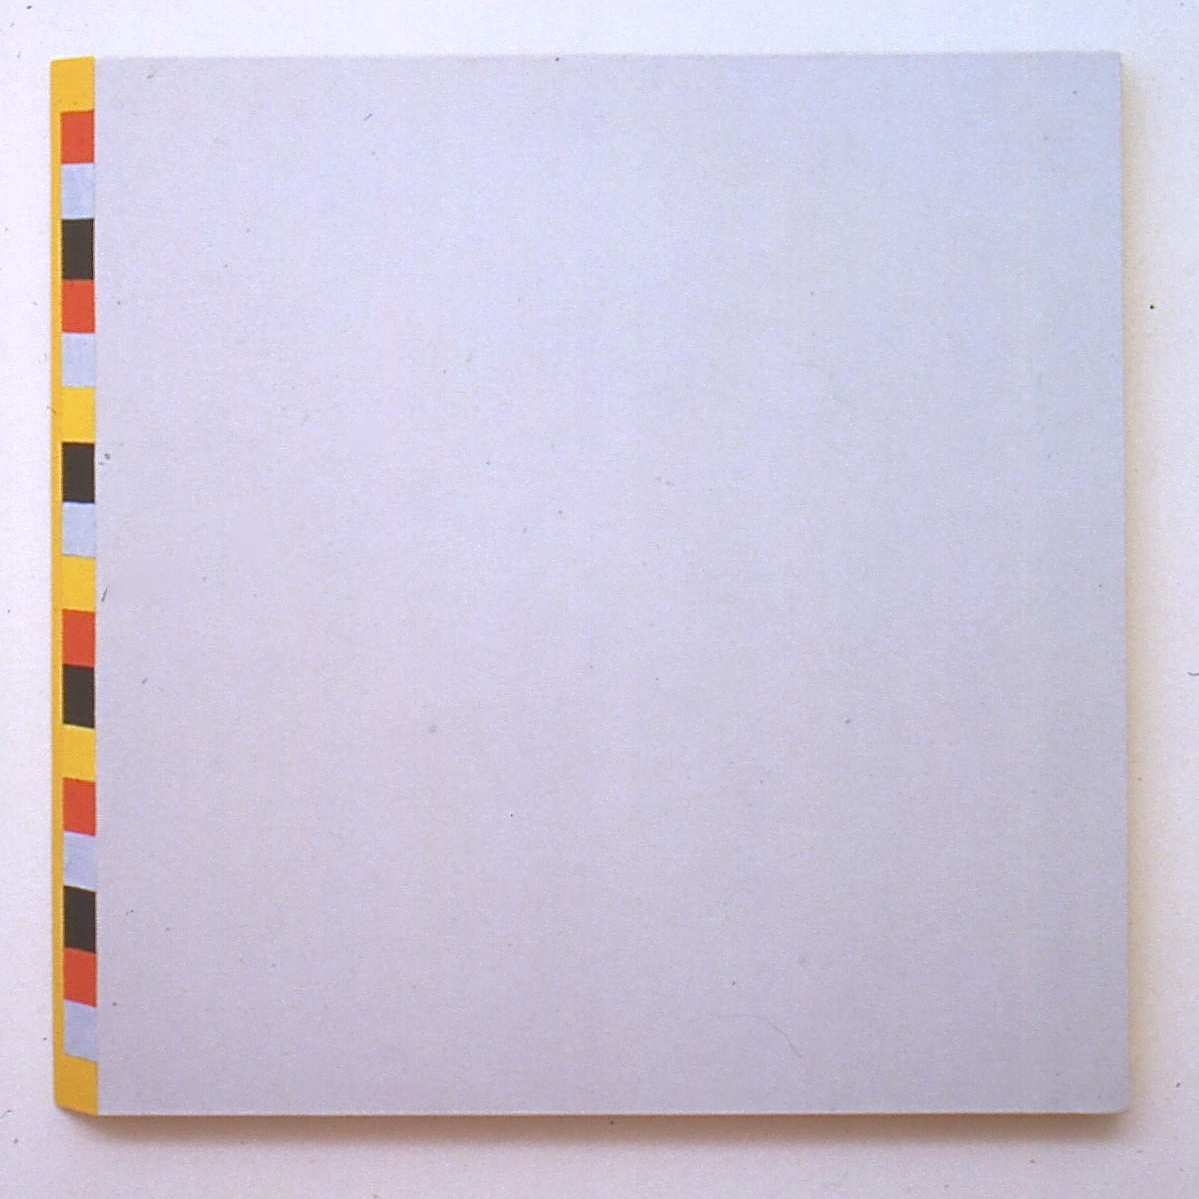 "Grey and Minimal but with an Oblique Edge, 1995, oil on linen, 34 1/4""x34 1/4""x1 3/4"""